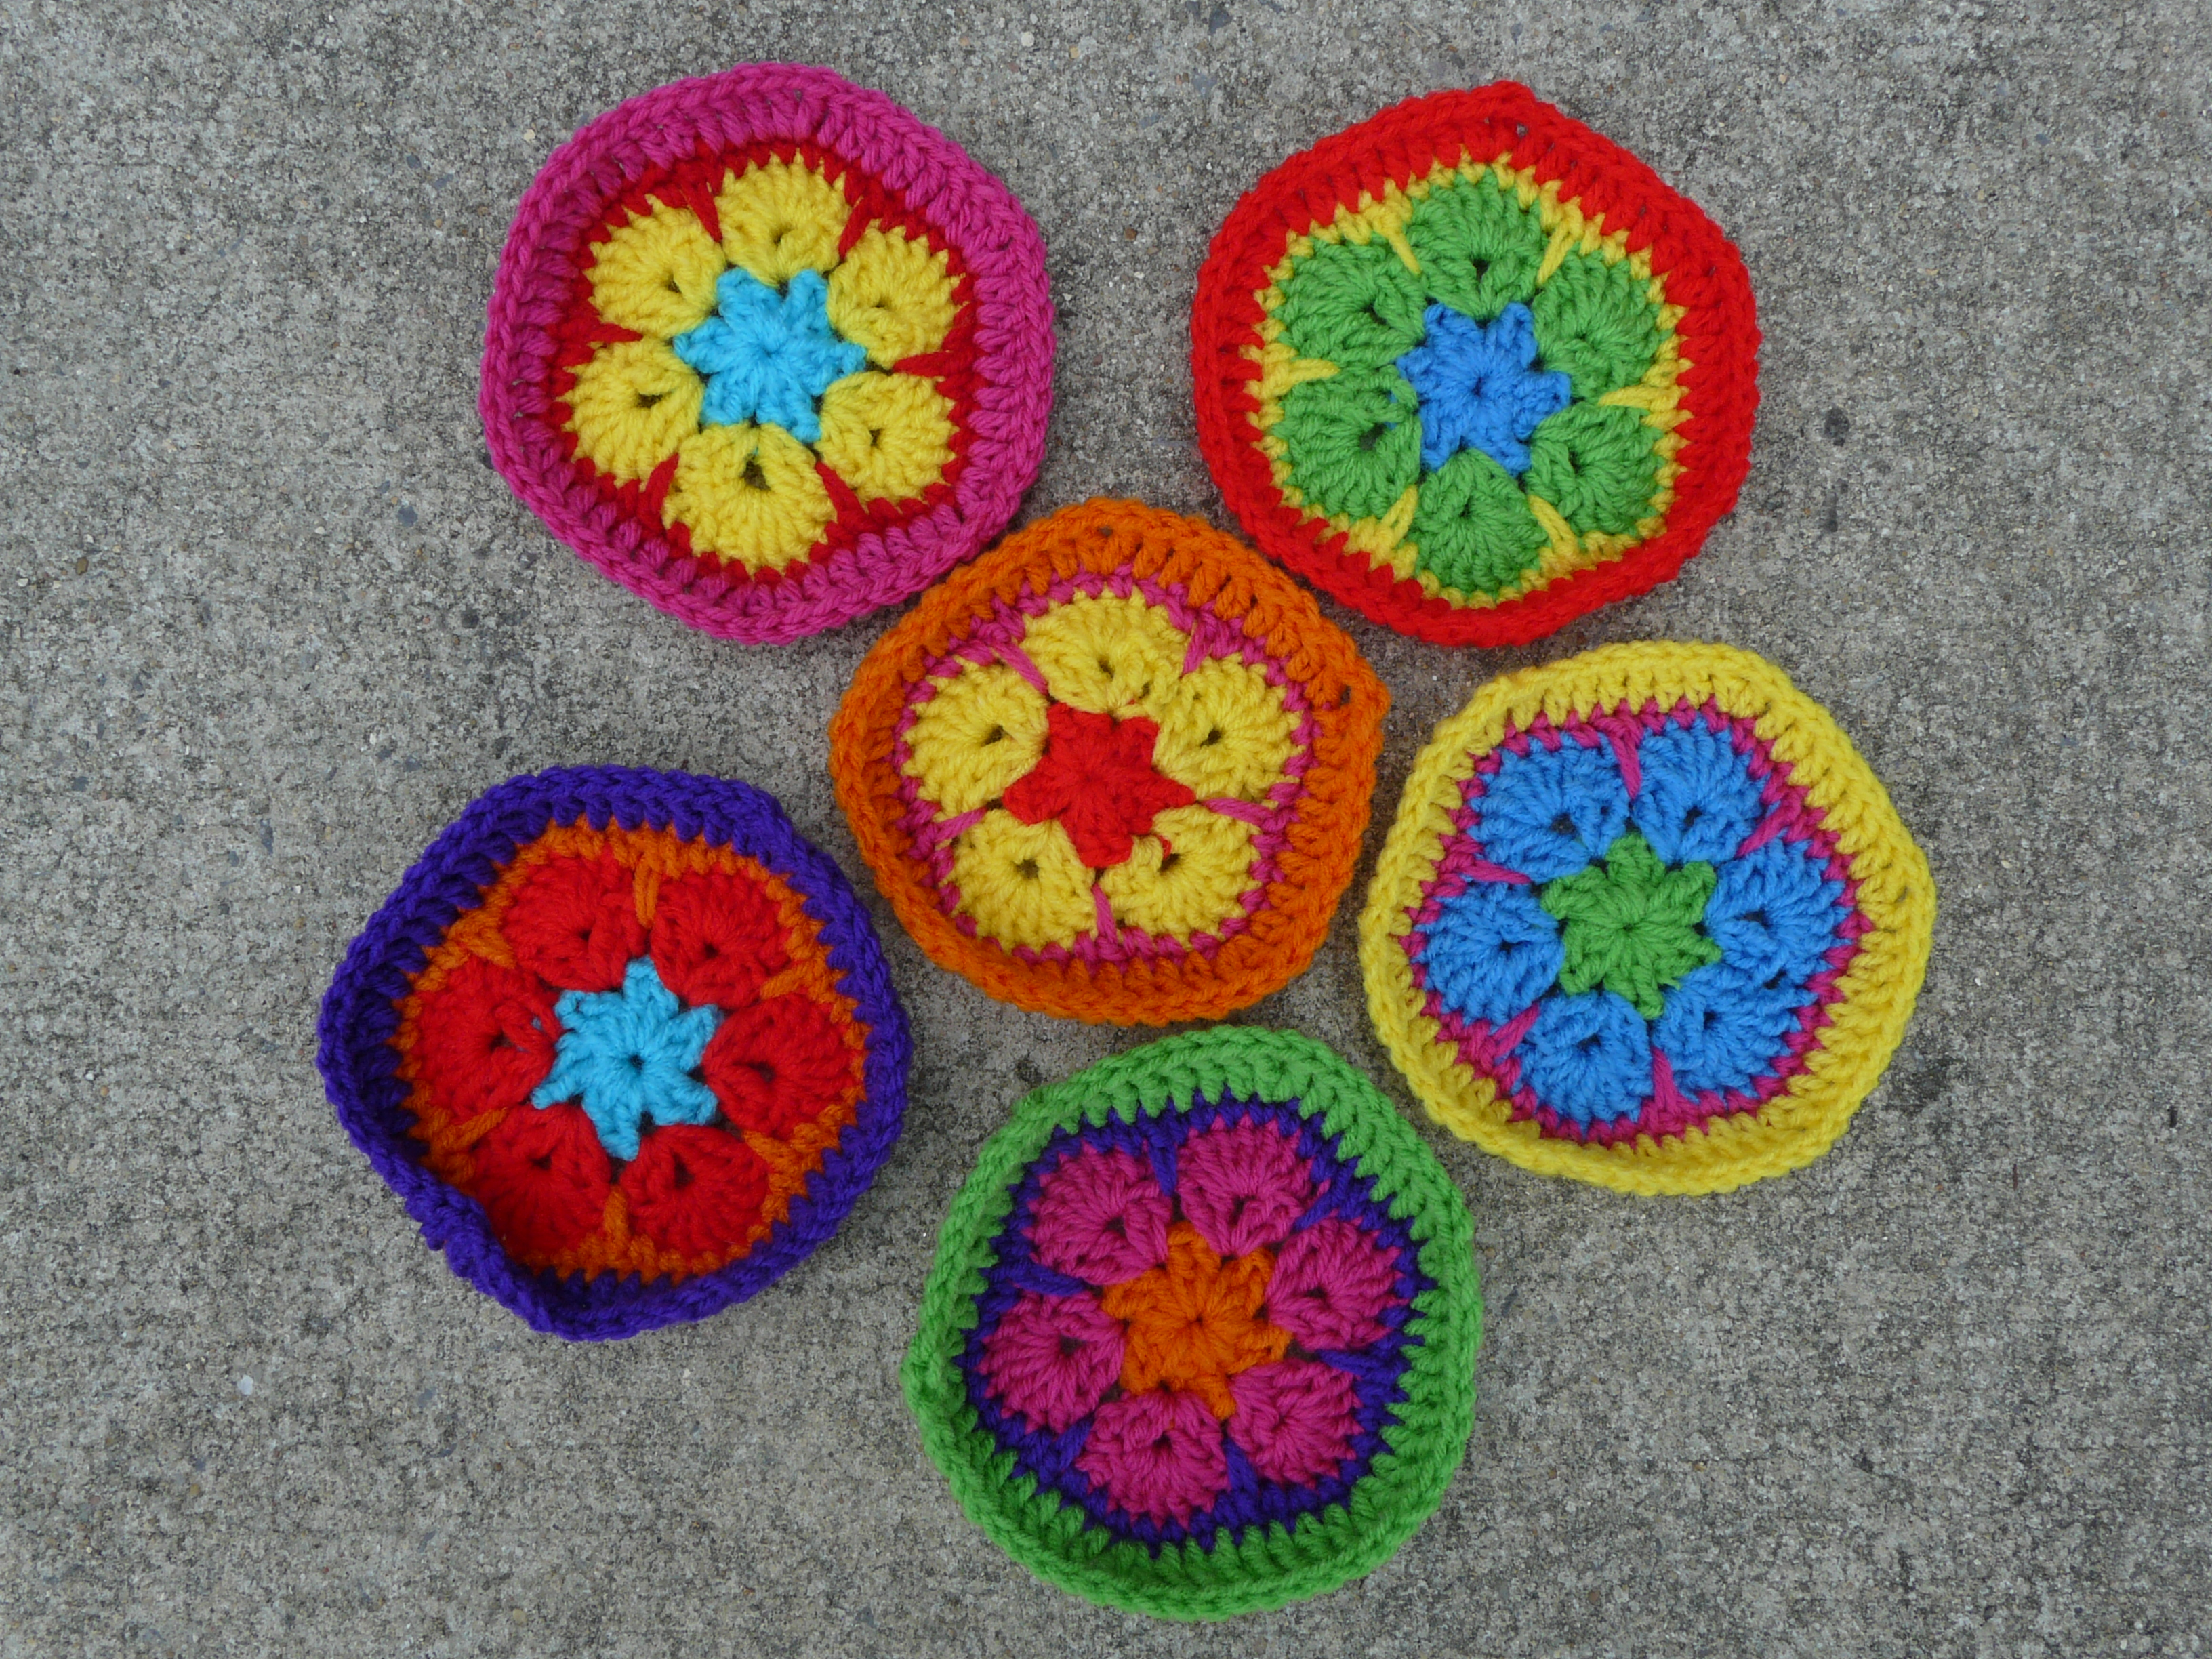 More fun with the African Flower Hexagon - Crochetbug